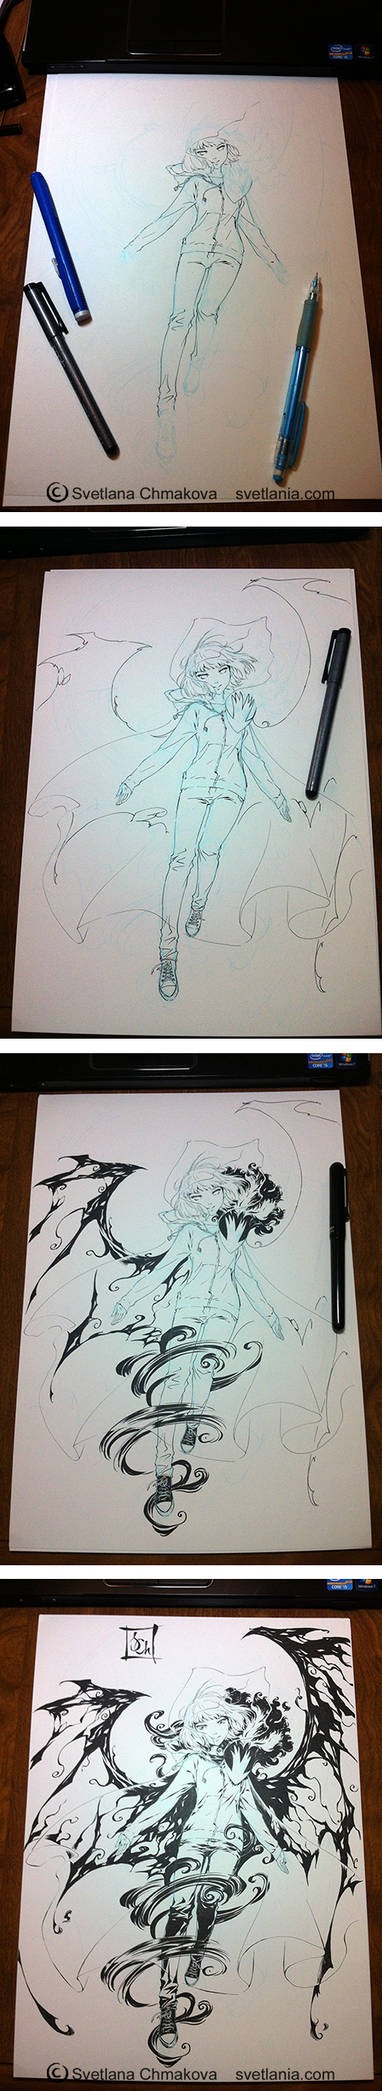 Inking Process for Nightschool print